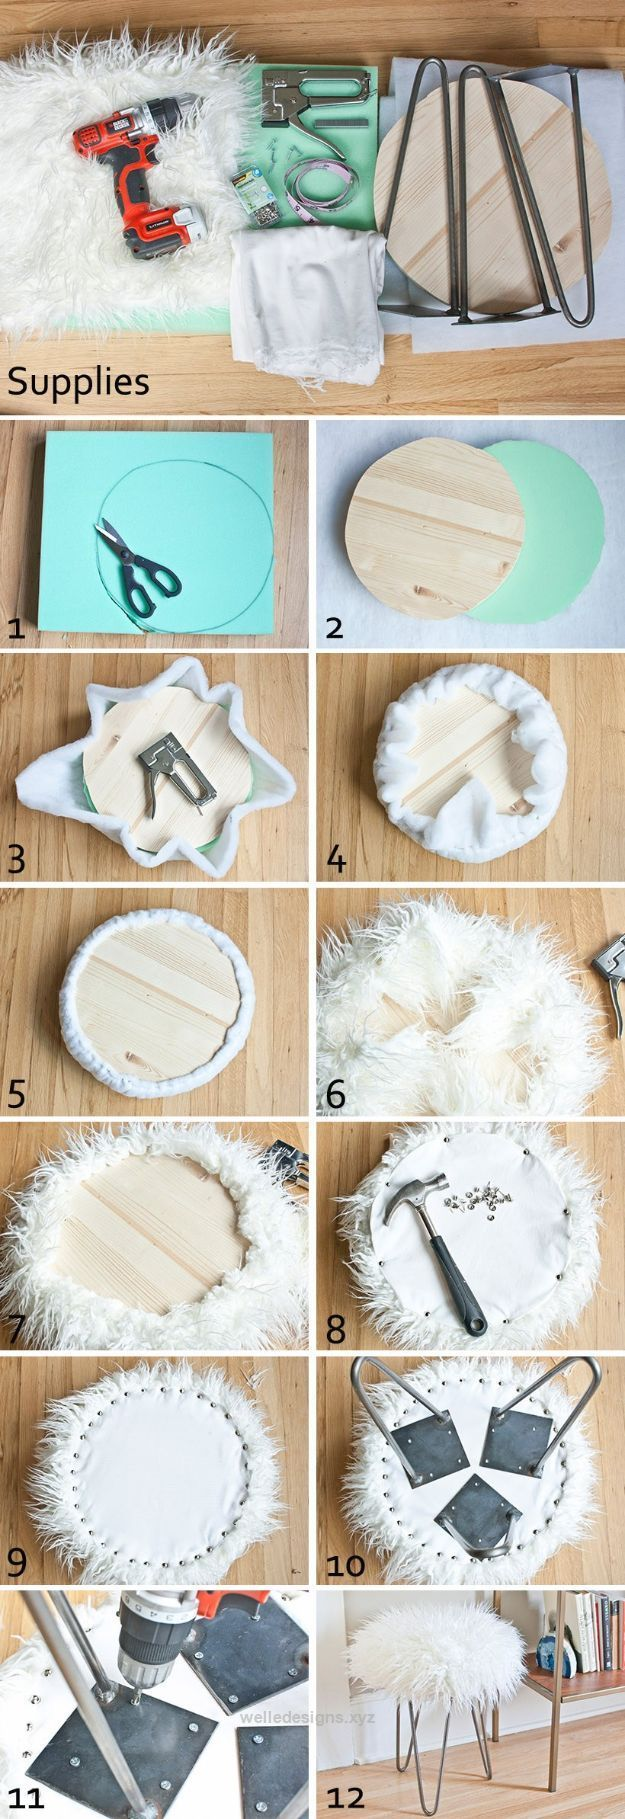 Check it out DIY Teen Room Decor Ideas for Girls | Faux Fur Stool with Hairpin Legs | Cool Bedroom Decor, Wall Art & Signs, Crafts, Bedding, Fun Do It Yourself Projects and Room I ..